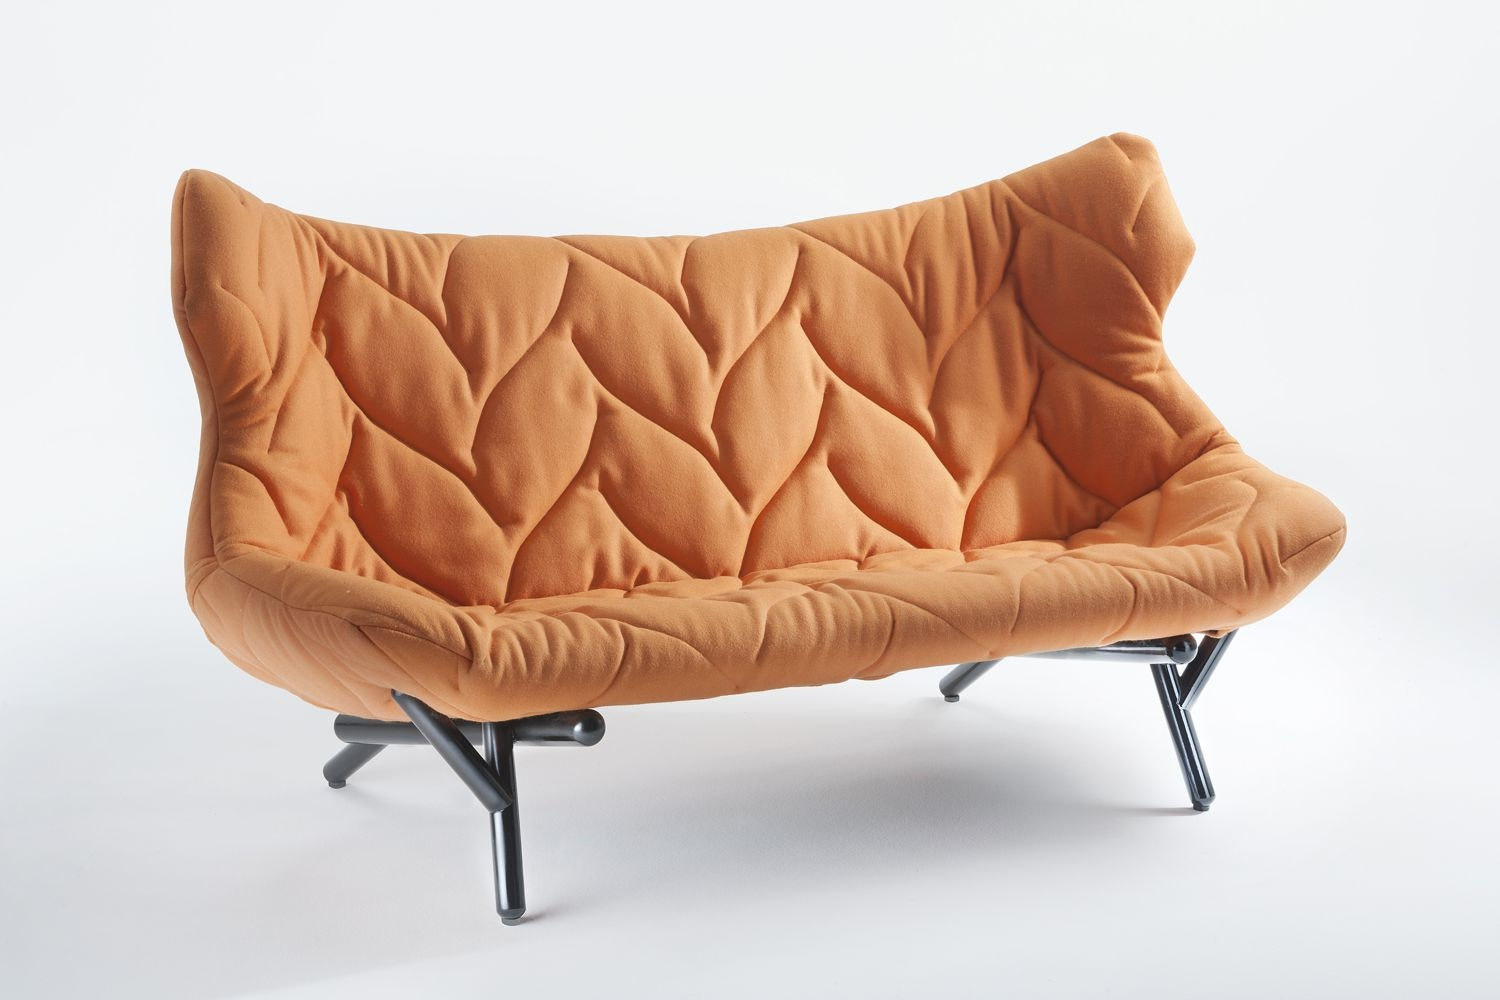 Foliage Sofa with Black Legs by Patricia Urquiola for Kartell